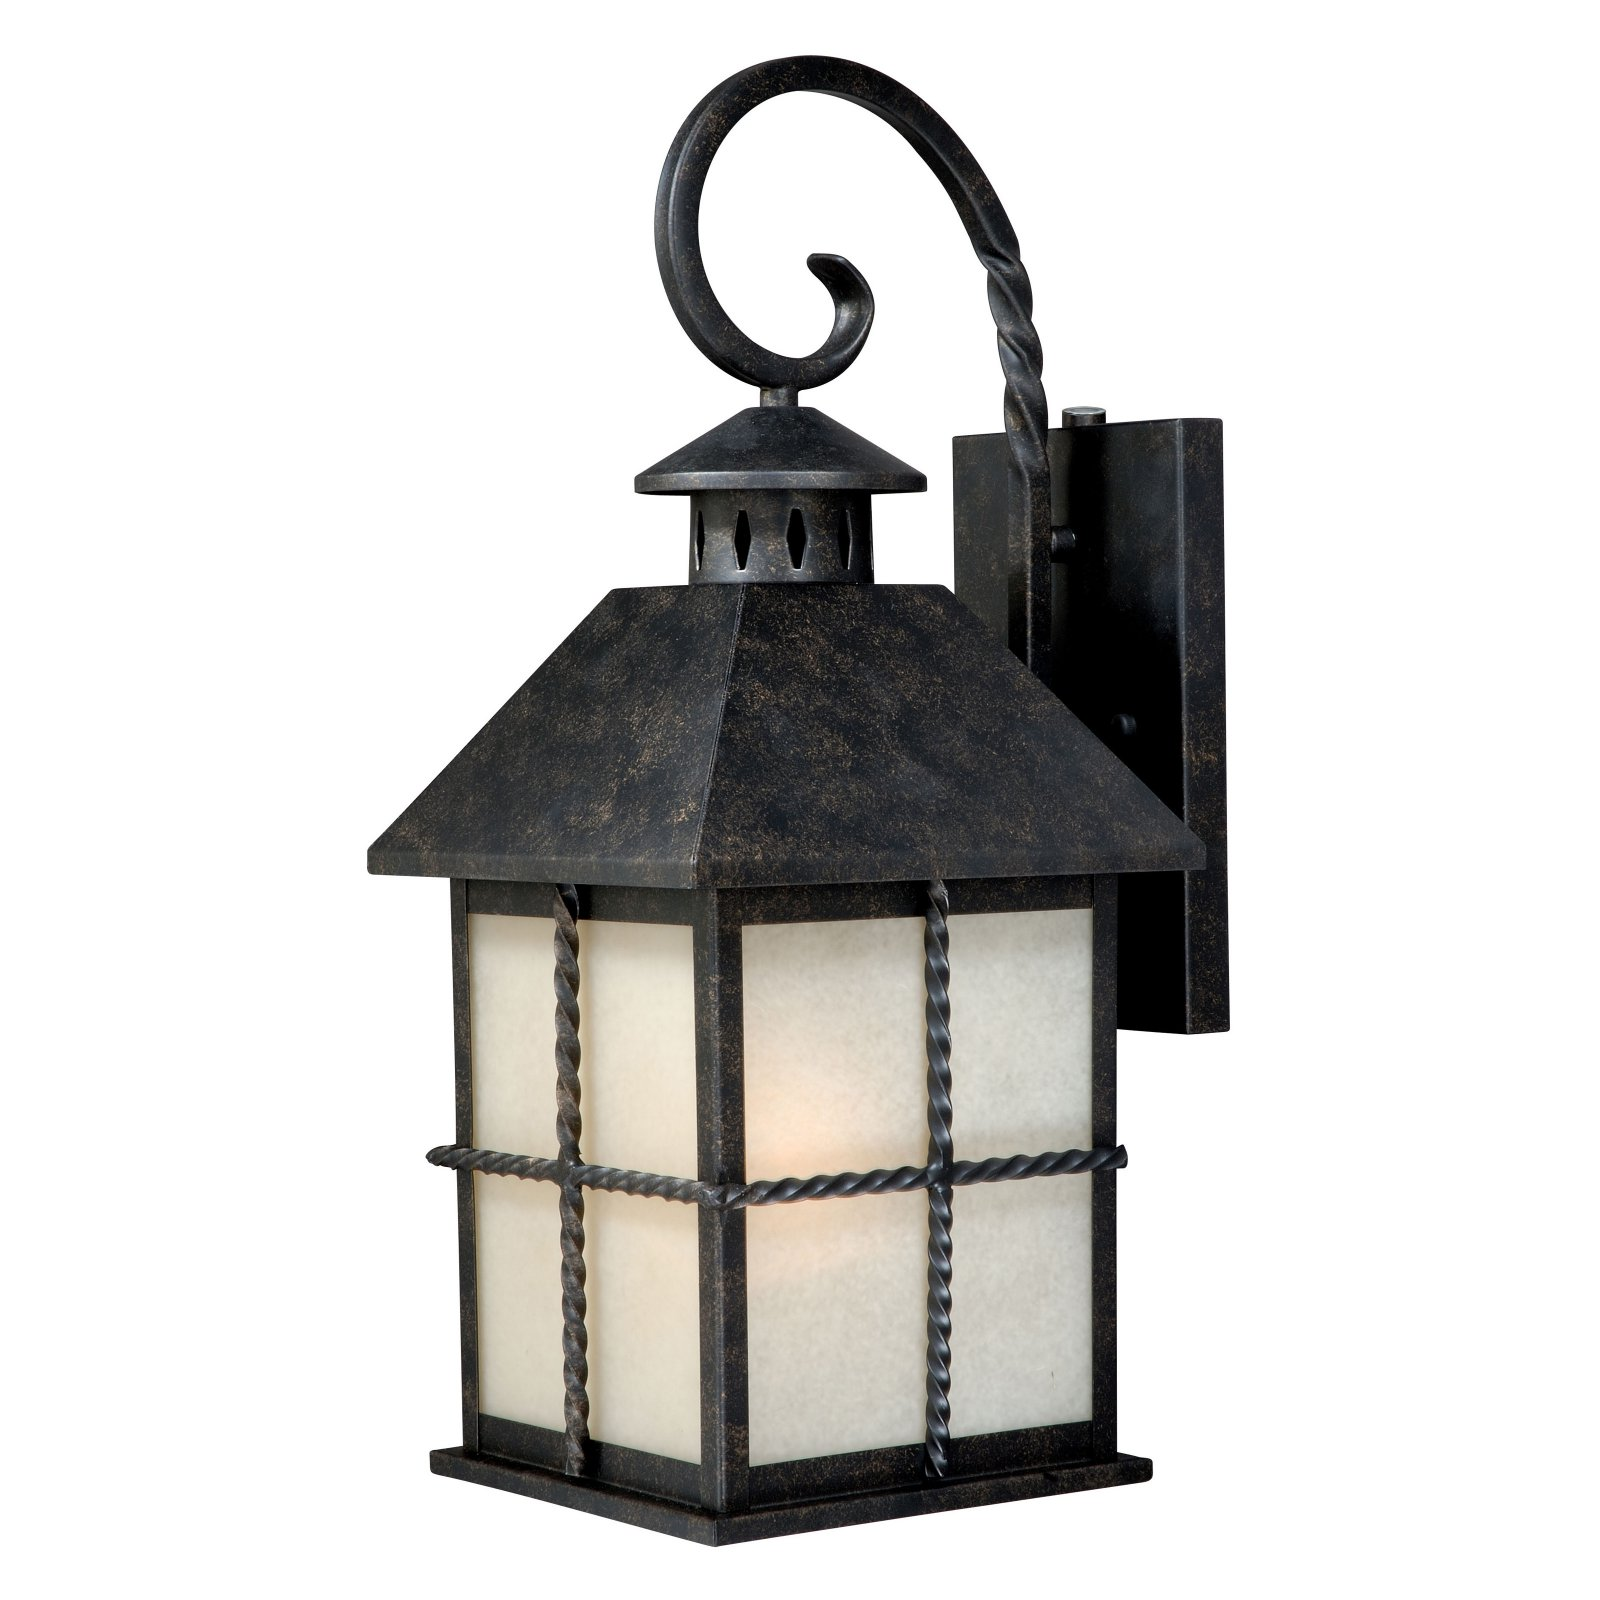 Vaxcel Savannah Outdoor Wall Light - 8W in. Gold Stone